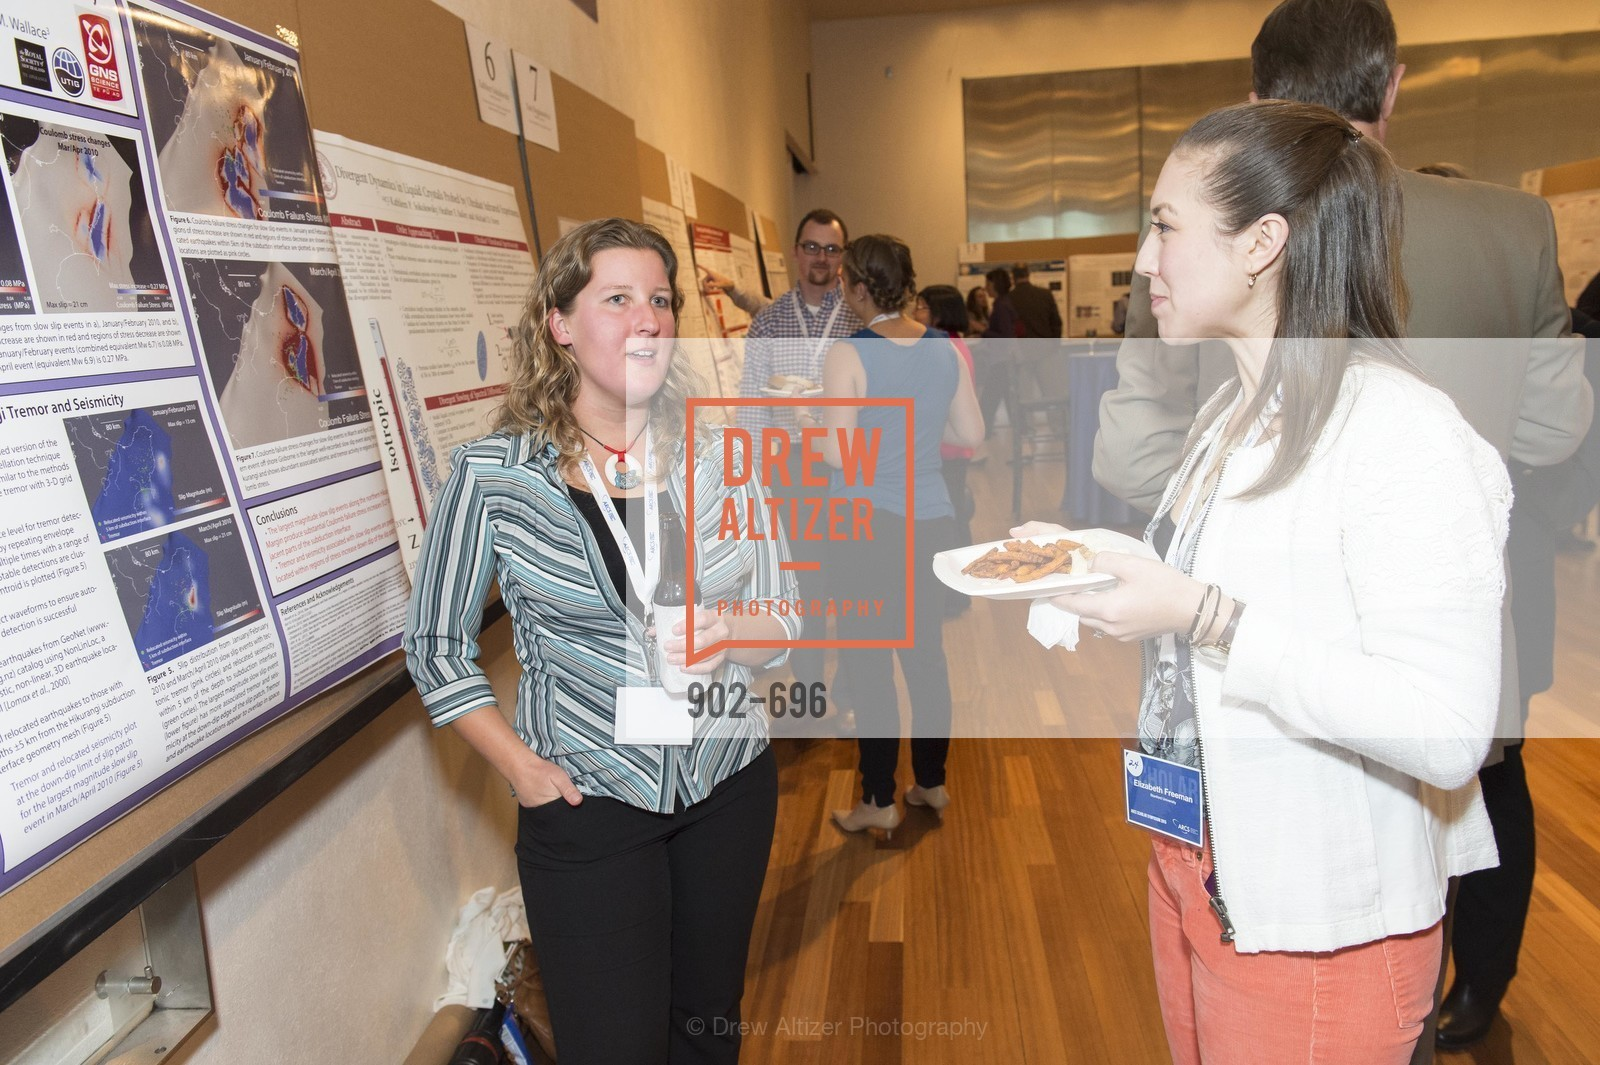 Erin Todd, Elizabeth Freeman, ARCS FOUNDATION Scholar Symposium, US, May 5th, 2015,Drew Altizer, Drew Altizer Photography, full-service agency, private events, San Francisco photographer, photographer california